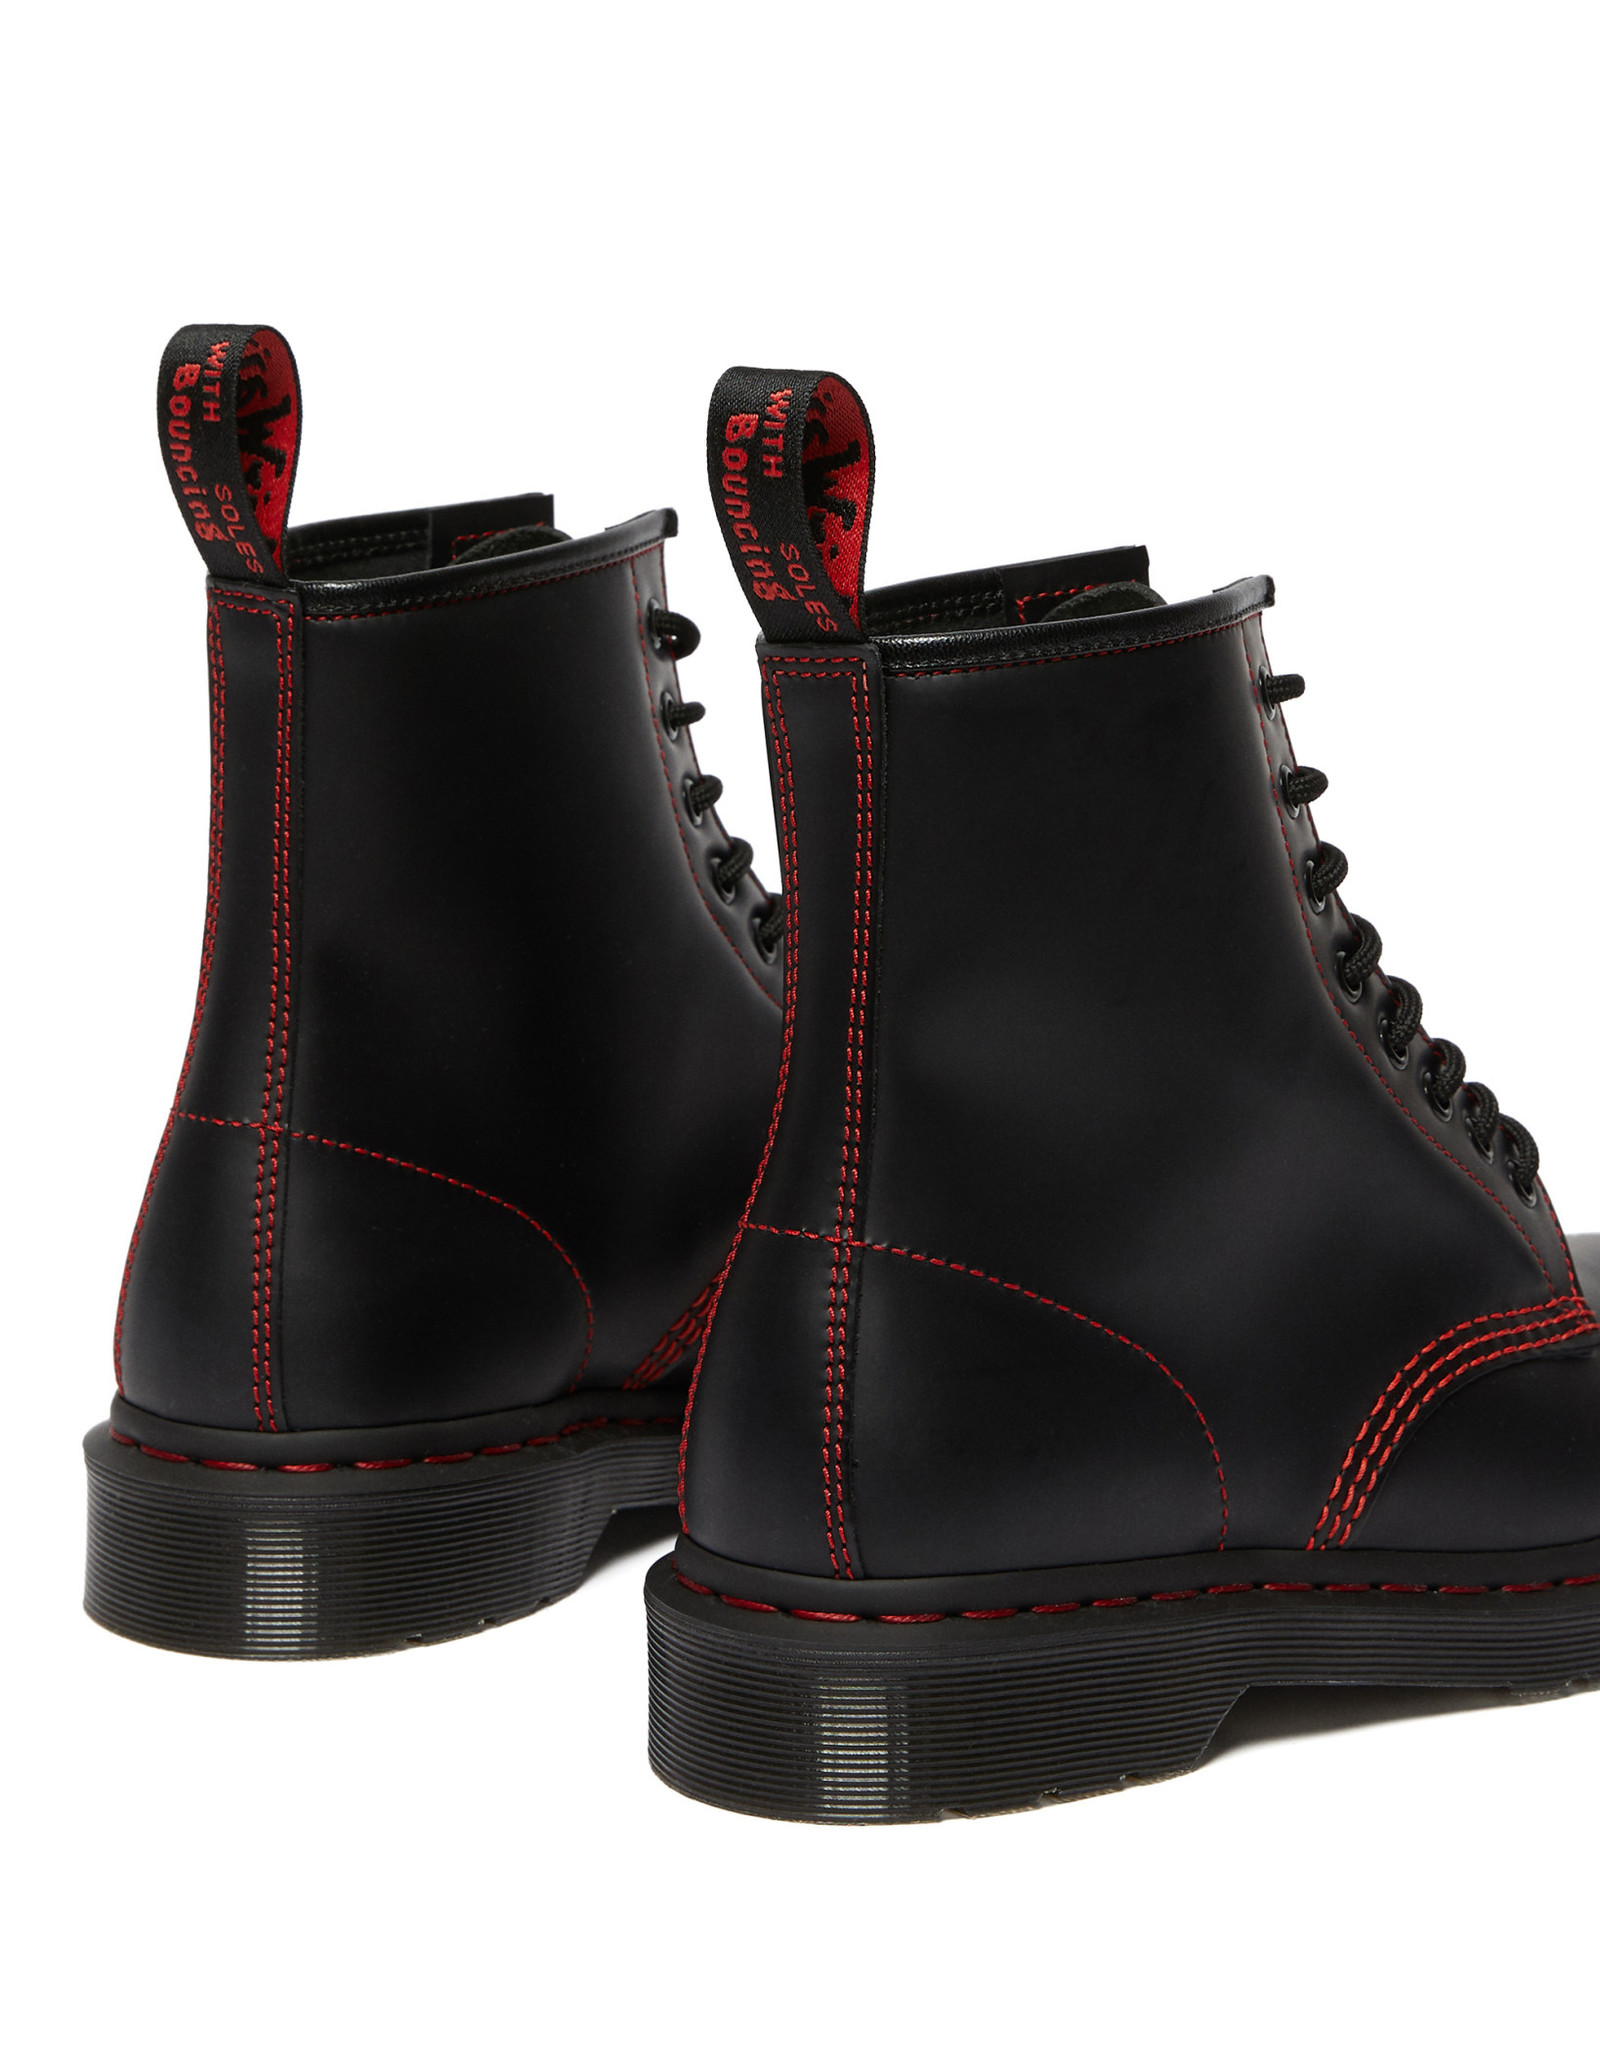 DR. MARTENS 1460 RED STITCH BLACK SMOOTH 815BRS-R25828001